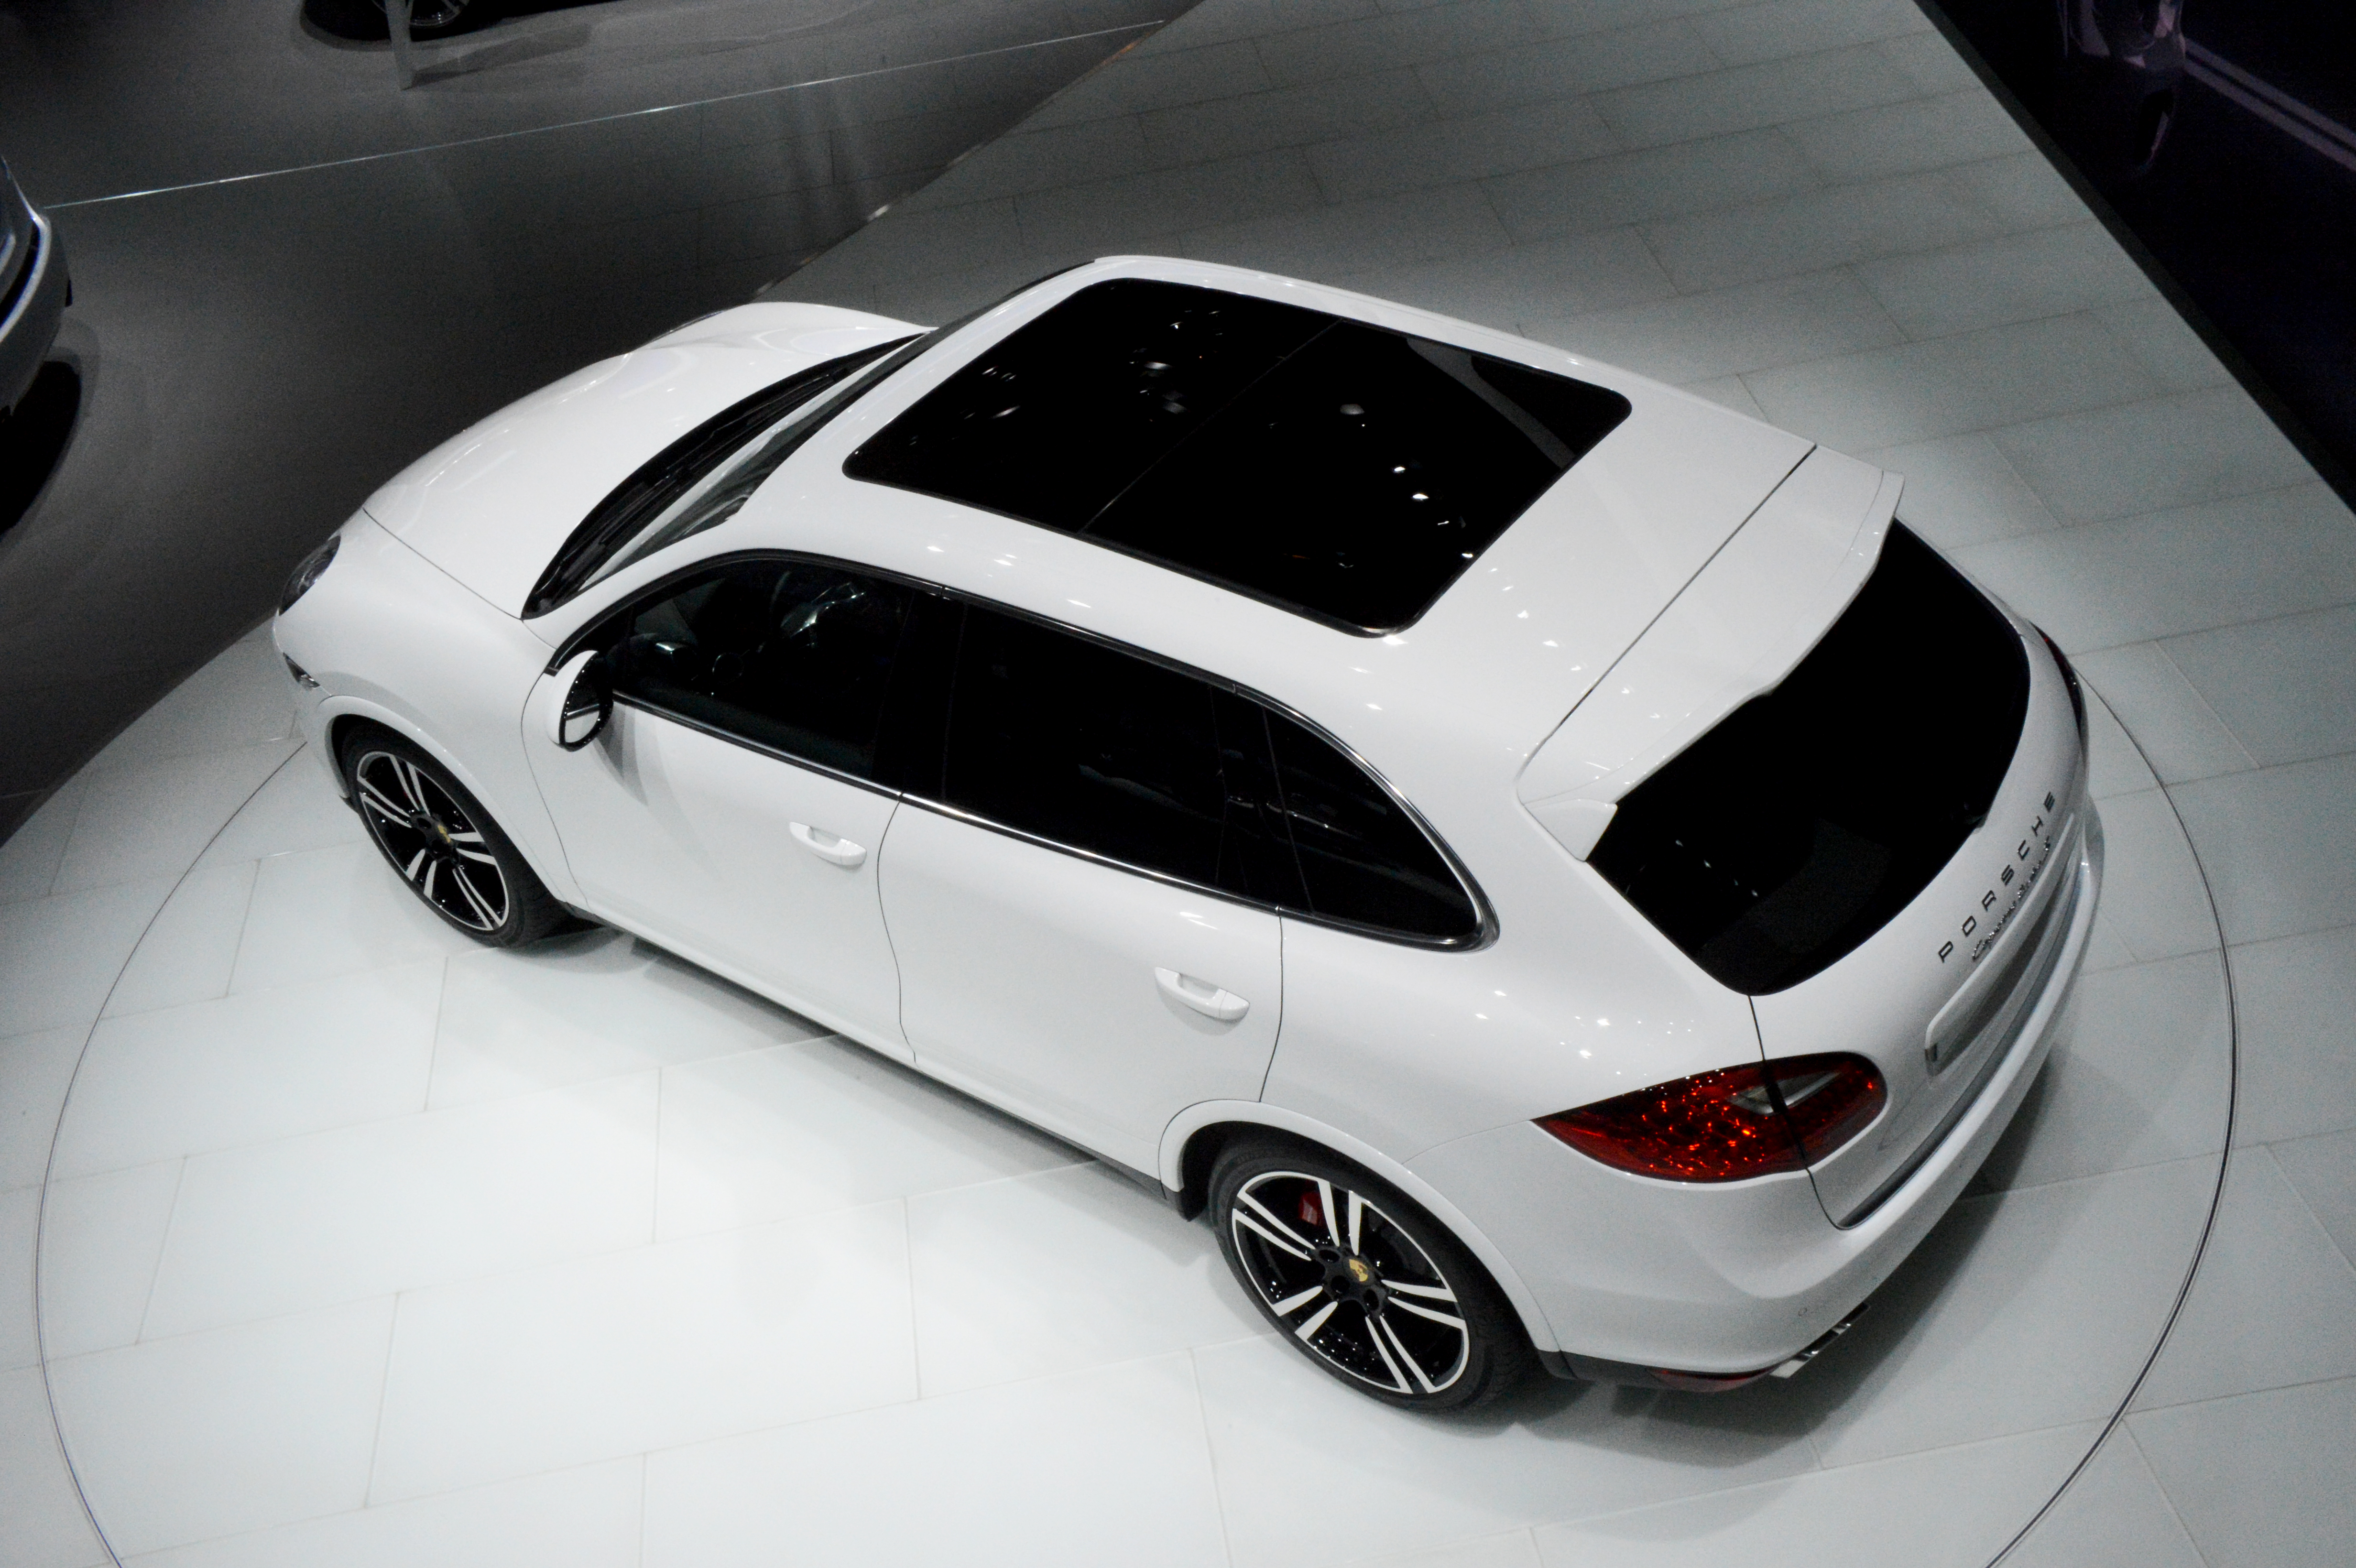 2013-porsche-cayenne-turbo-s-at-naias-2013-by-michelin-media